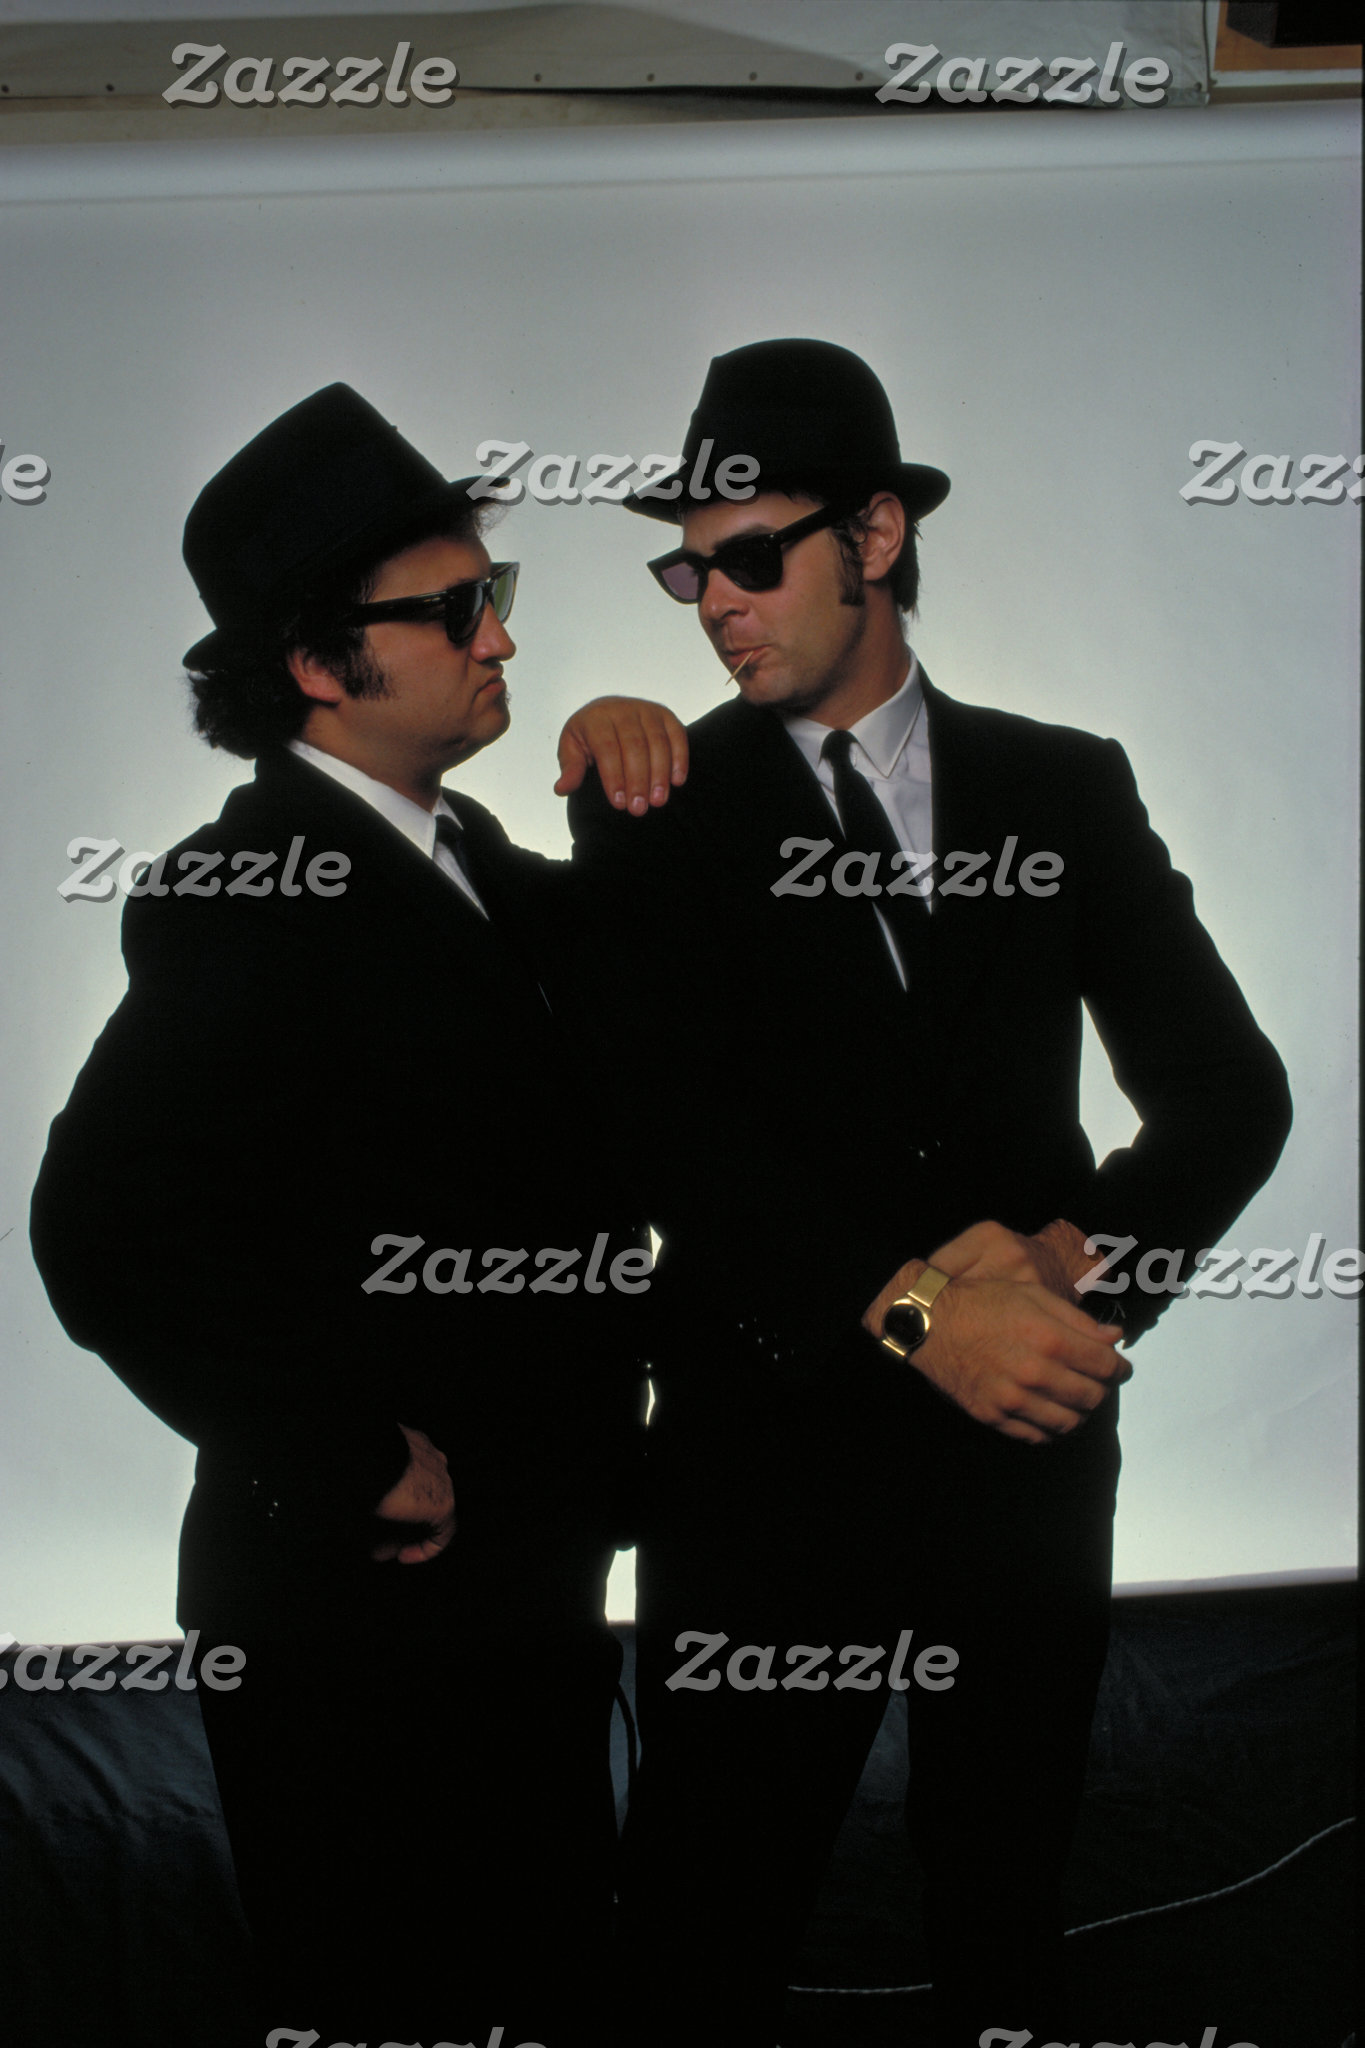 Jake and Elwood Photo 2